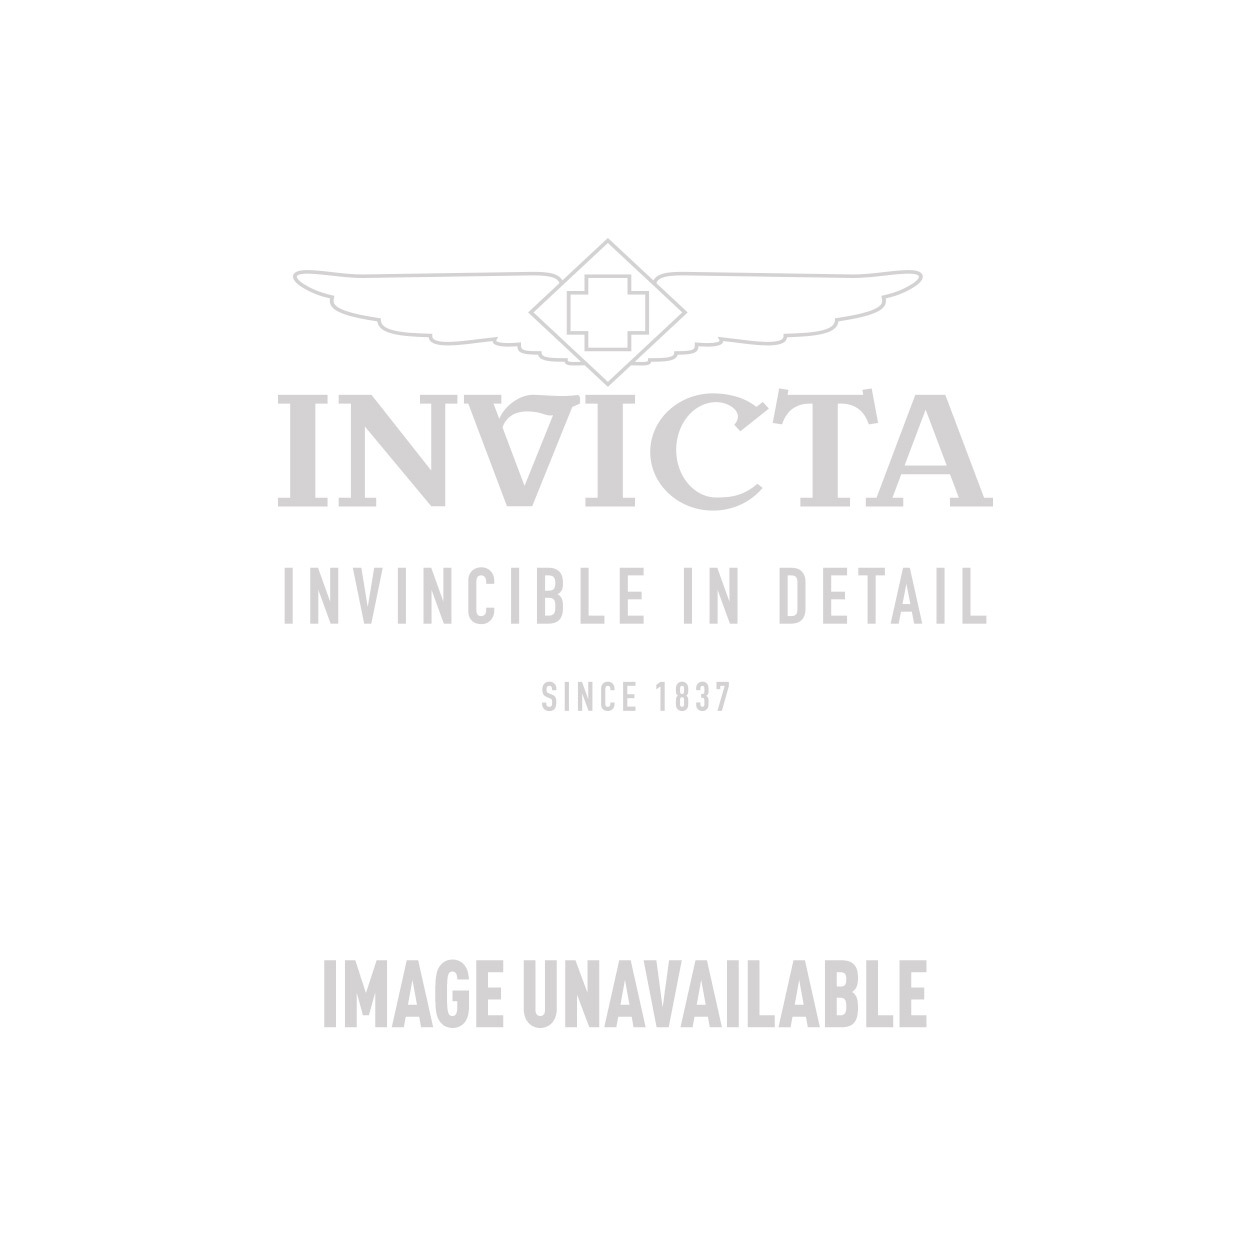 Invicta Bolt Swiss Made Quartz Watch - Gold, Stainless Steel case Stainless Steel band - Model 21341